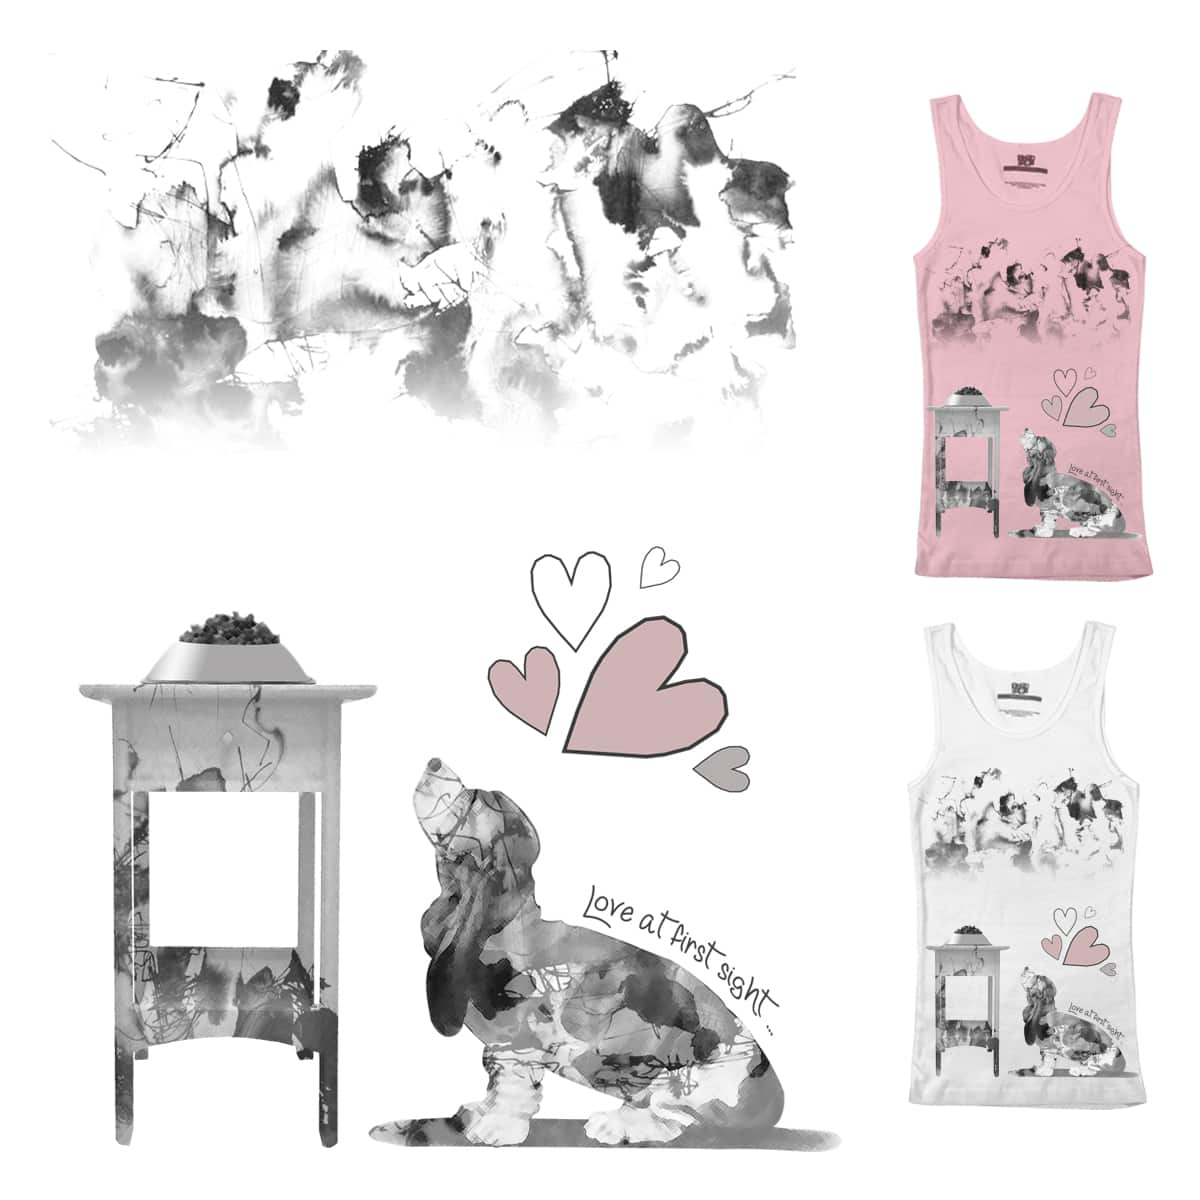 Love at first sight by AncikiLi on Threadless